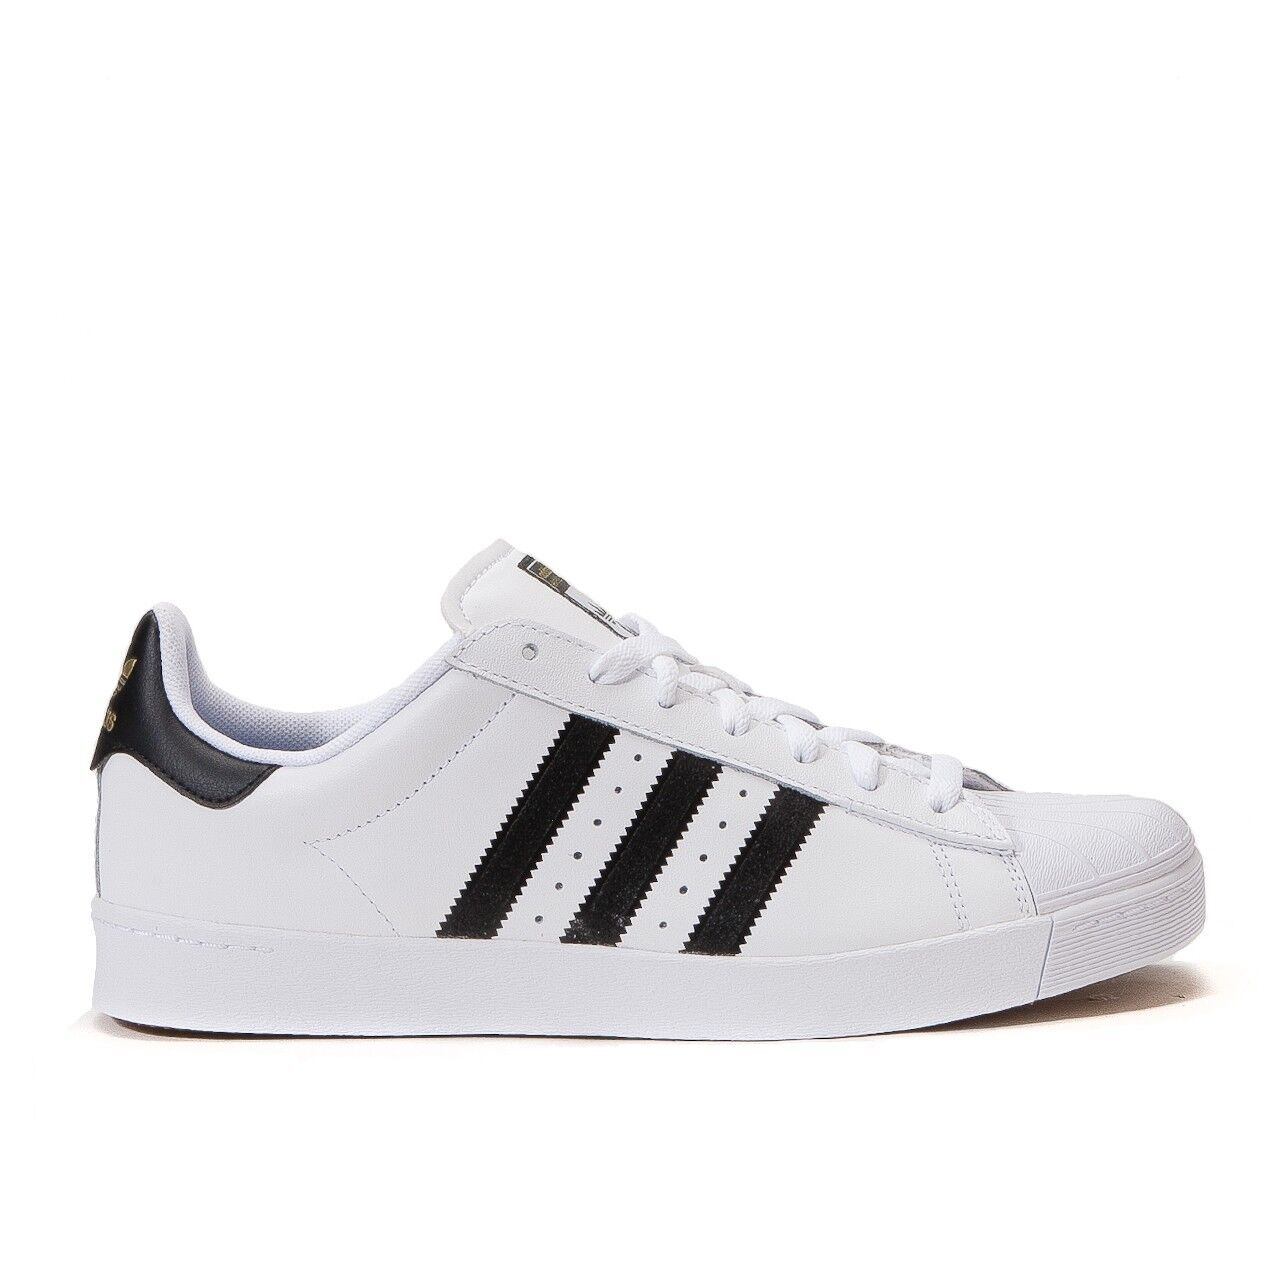 Adidas Superstar Vulc ADV White/Black Mens Shoes D68718 Brand discount